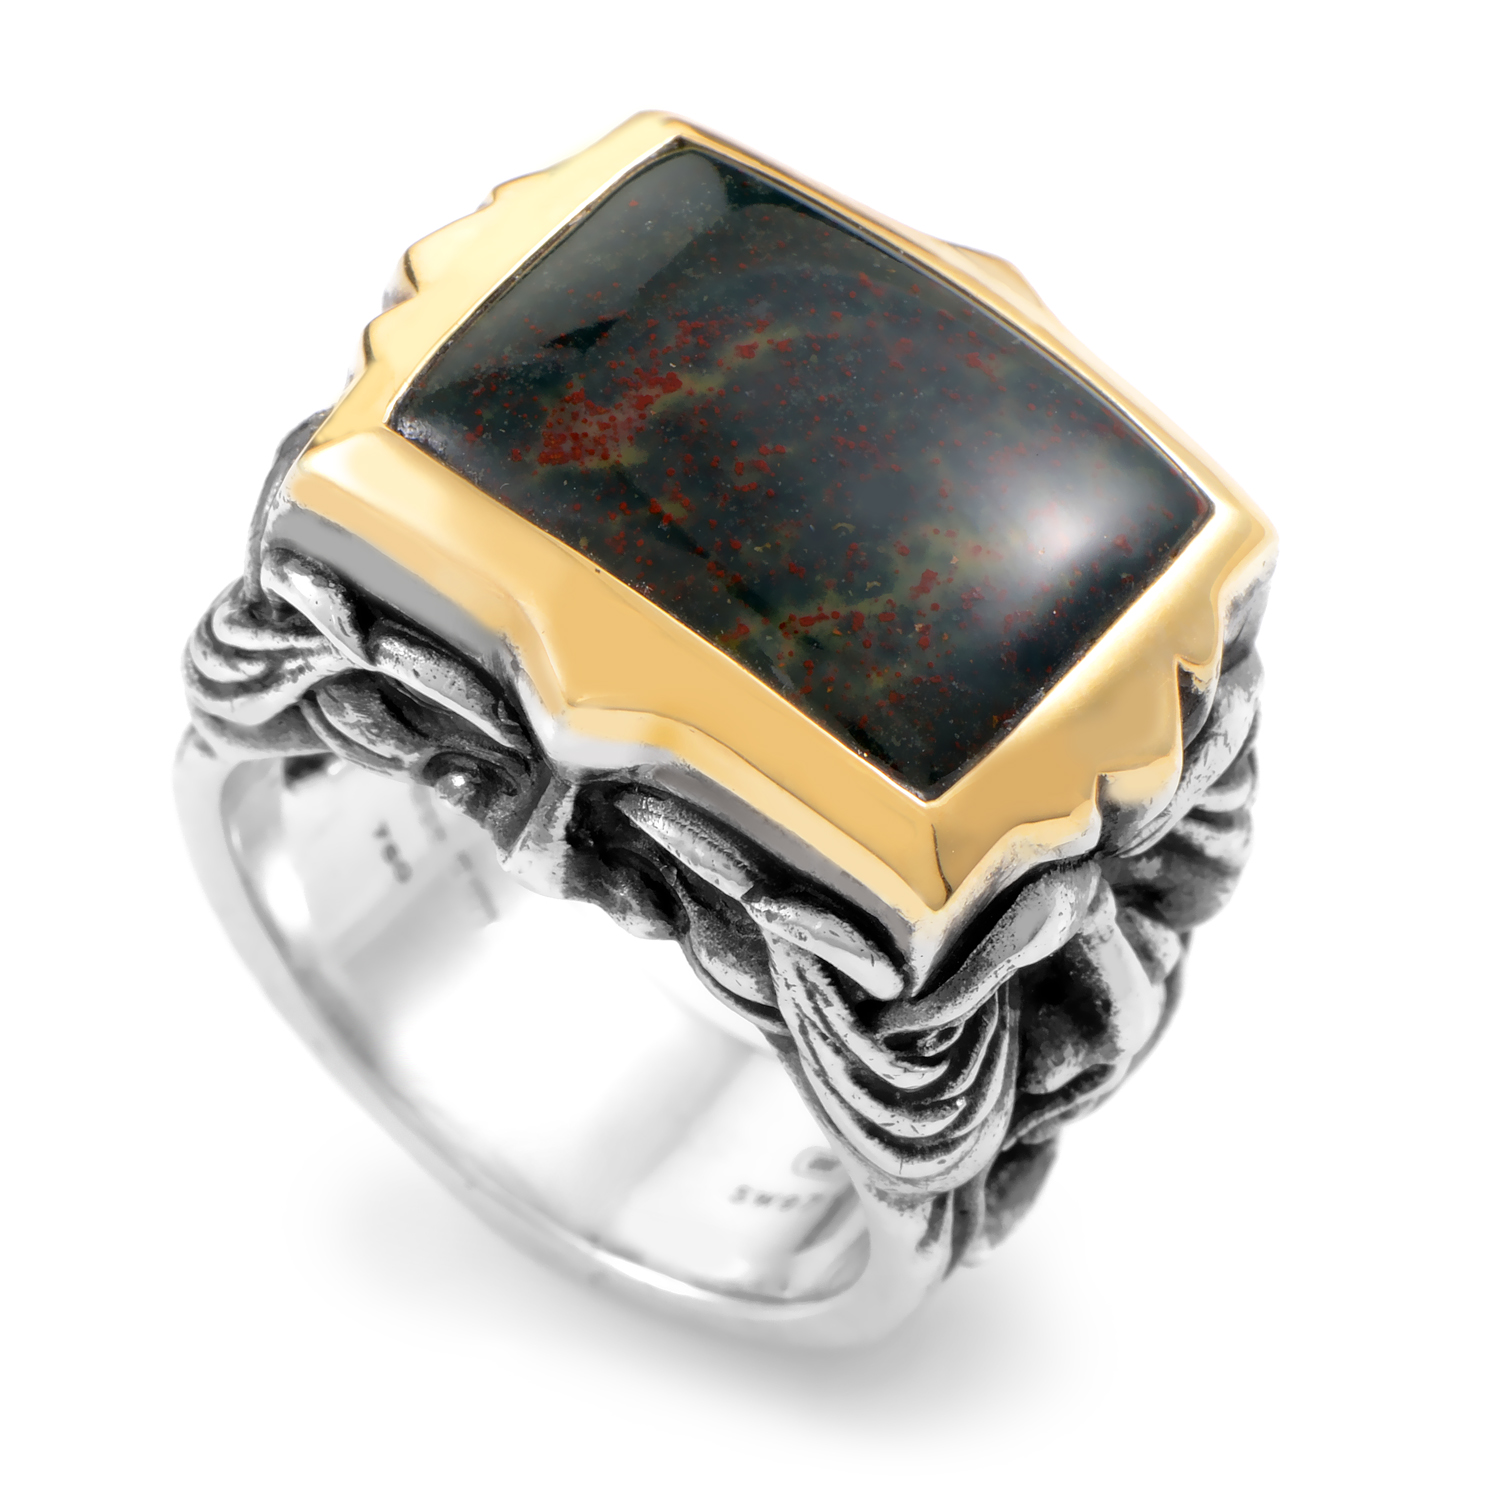 London Calling Silver & 18K Yellow Gold Bloodstone Gargoyle Ring